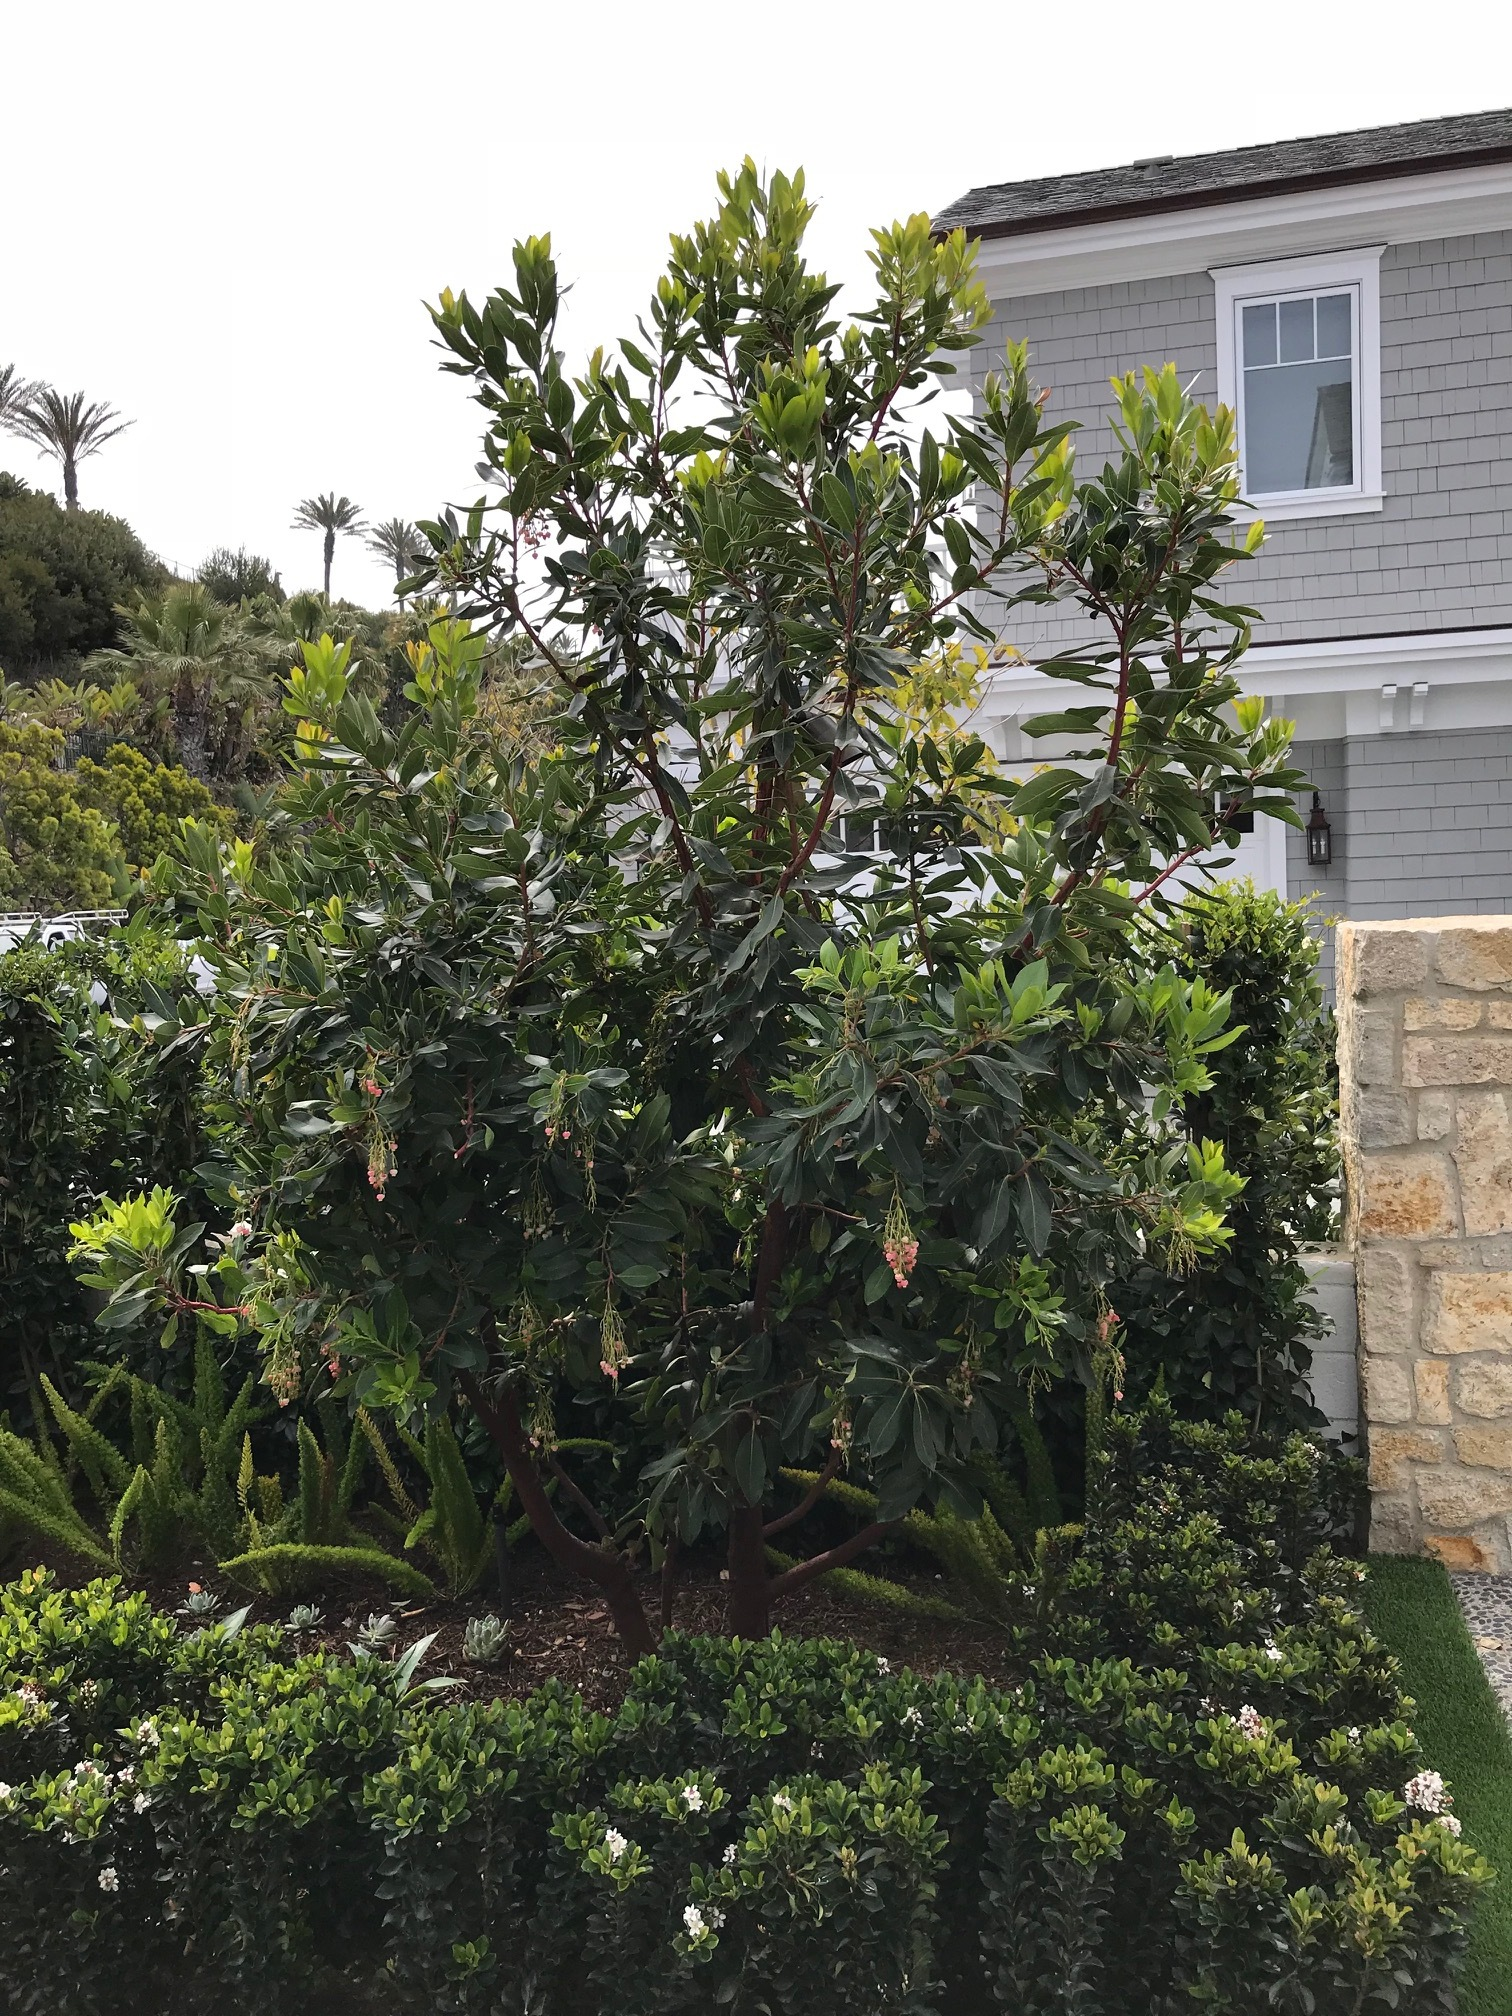 Landscape construction upgraded with green plantings in Dana Point, California, United States